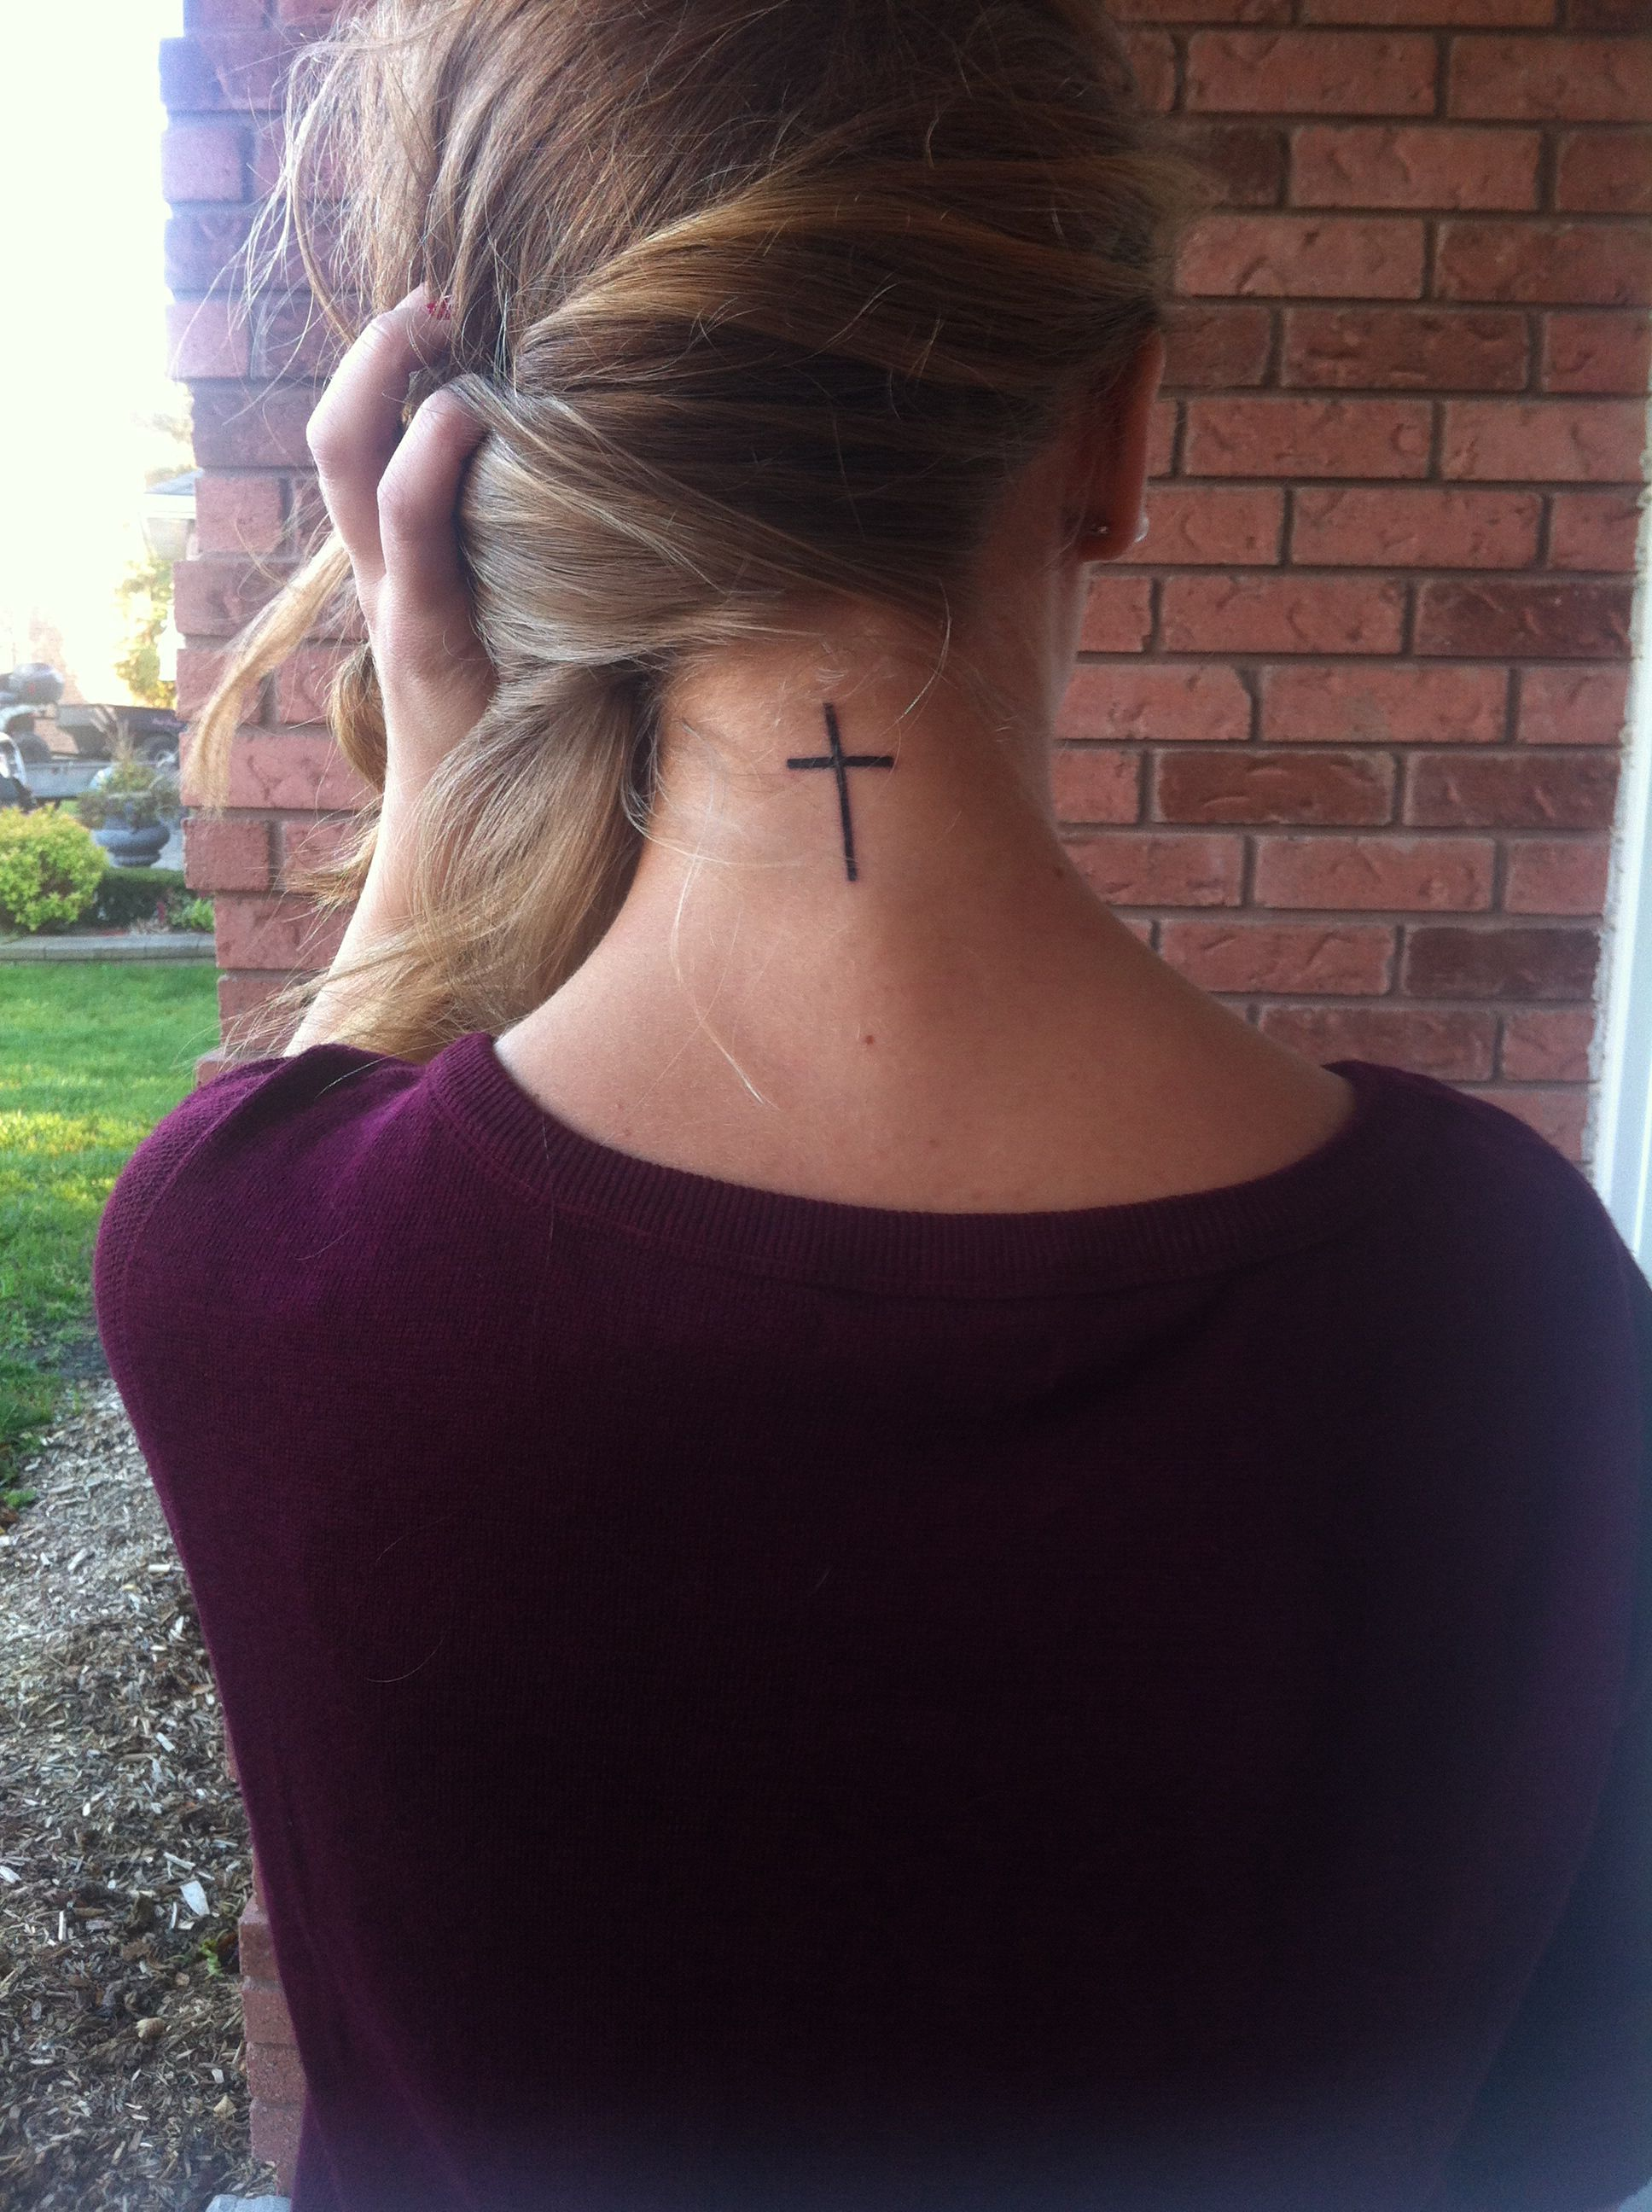 I Want This Tattoo So Bad I Can Taste It Ink Doesn T Taste Very